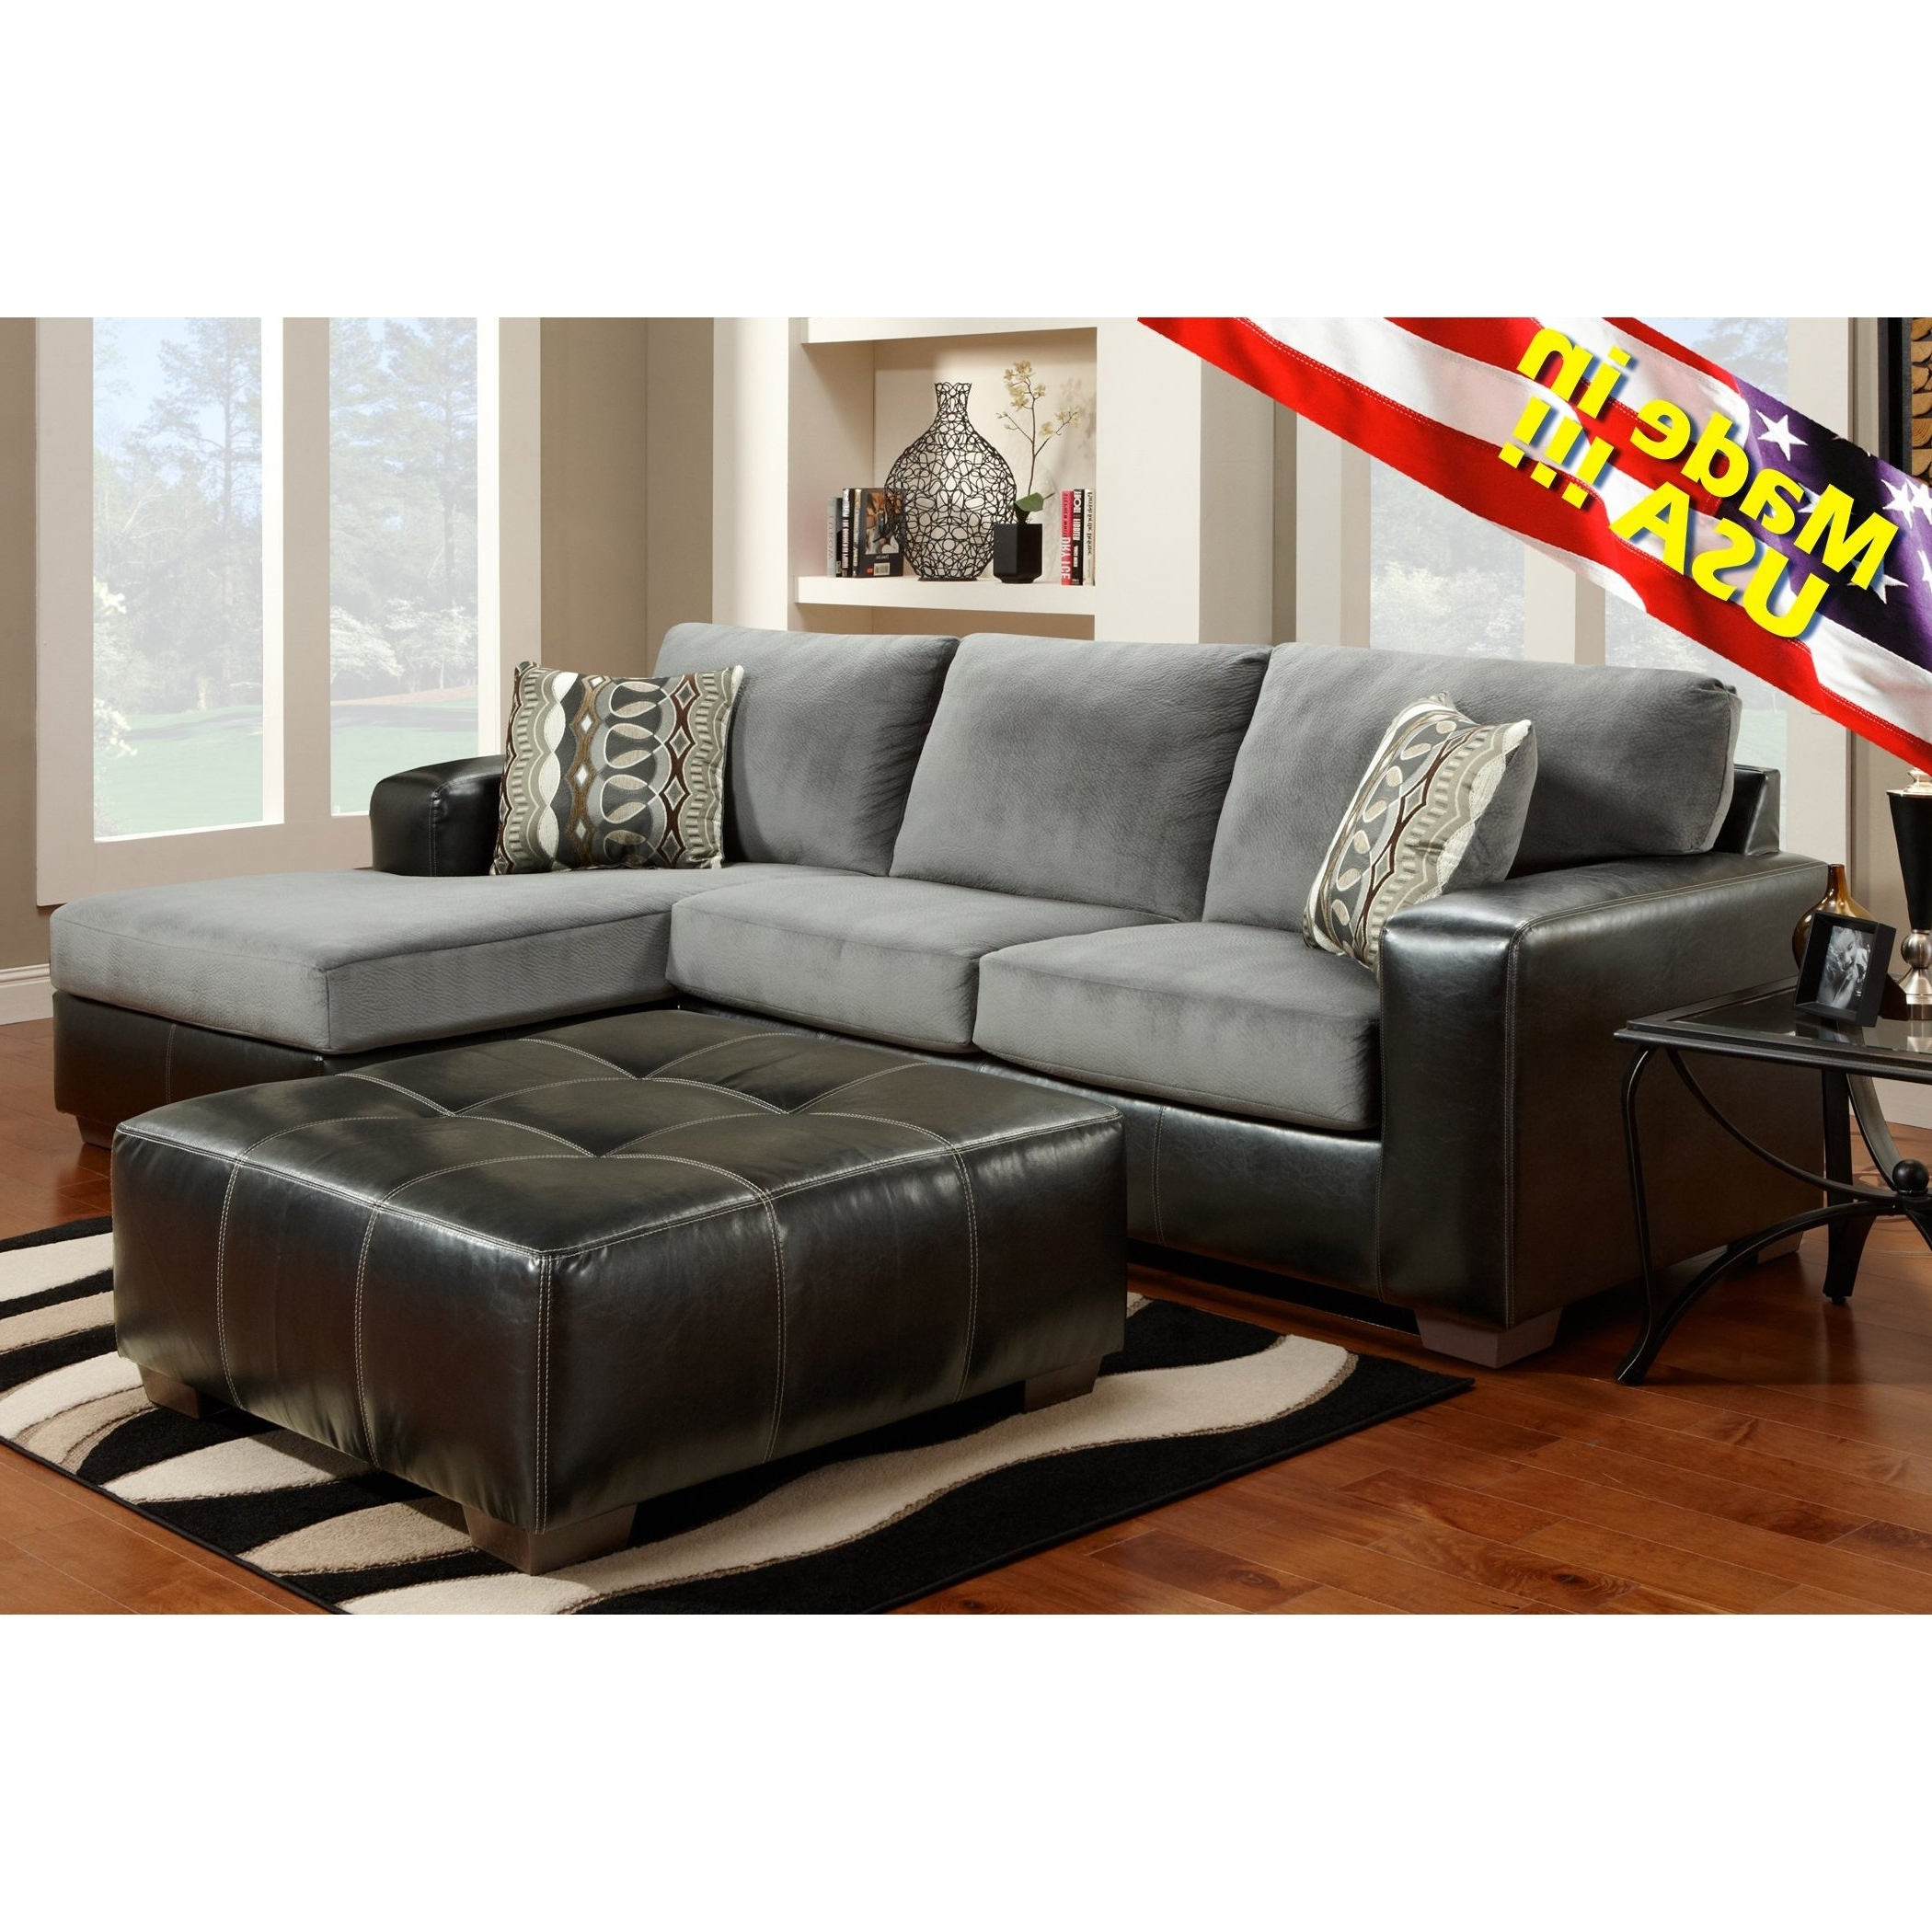 Made In Usa Sectional Sofas Regarding 2017 Cumulus Black Gray Two Toned Sectional Sofa Chaise Set, Made In (View 9 of 15)